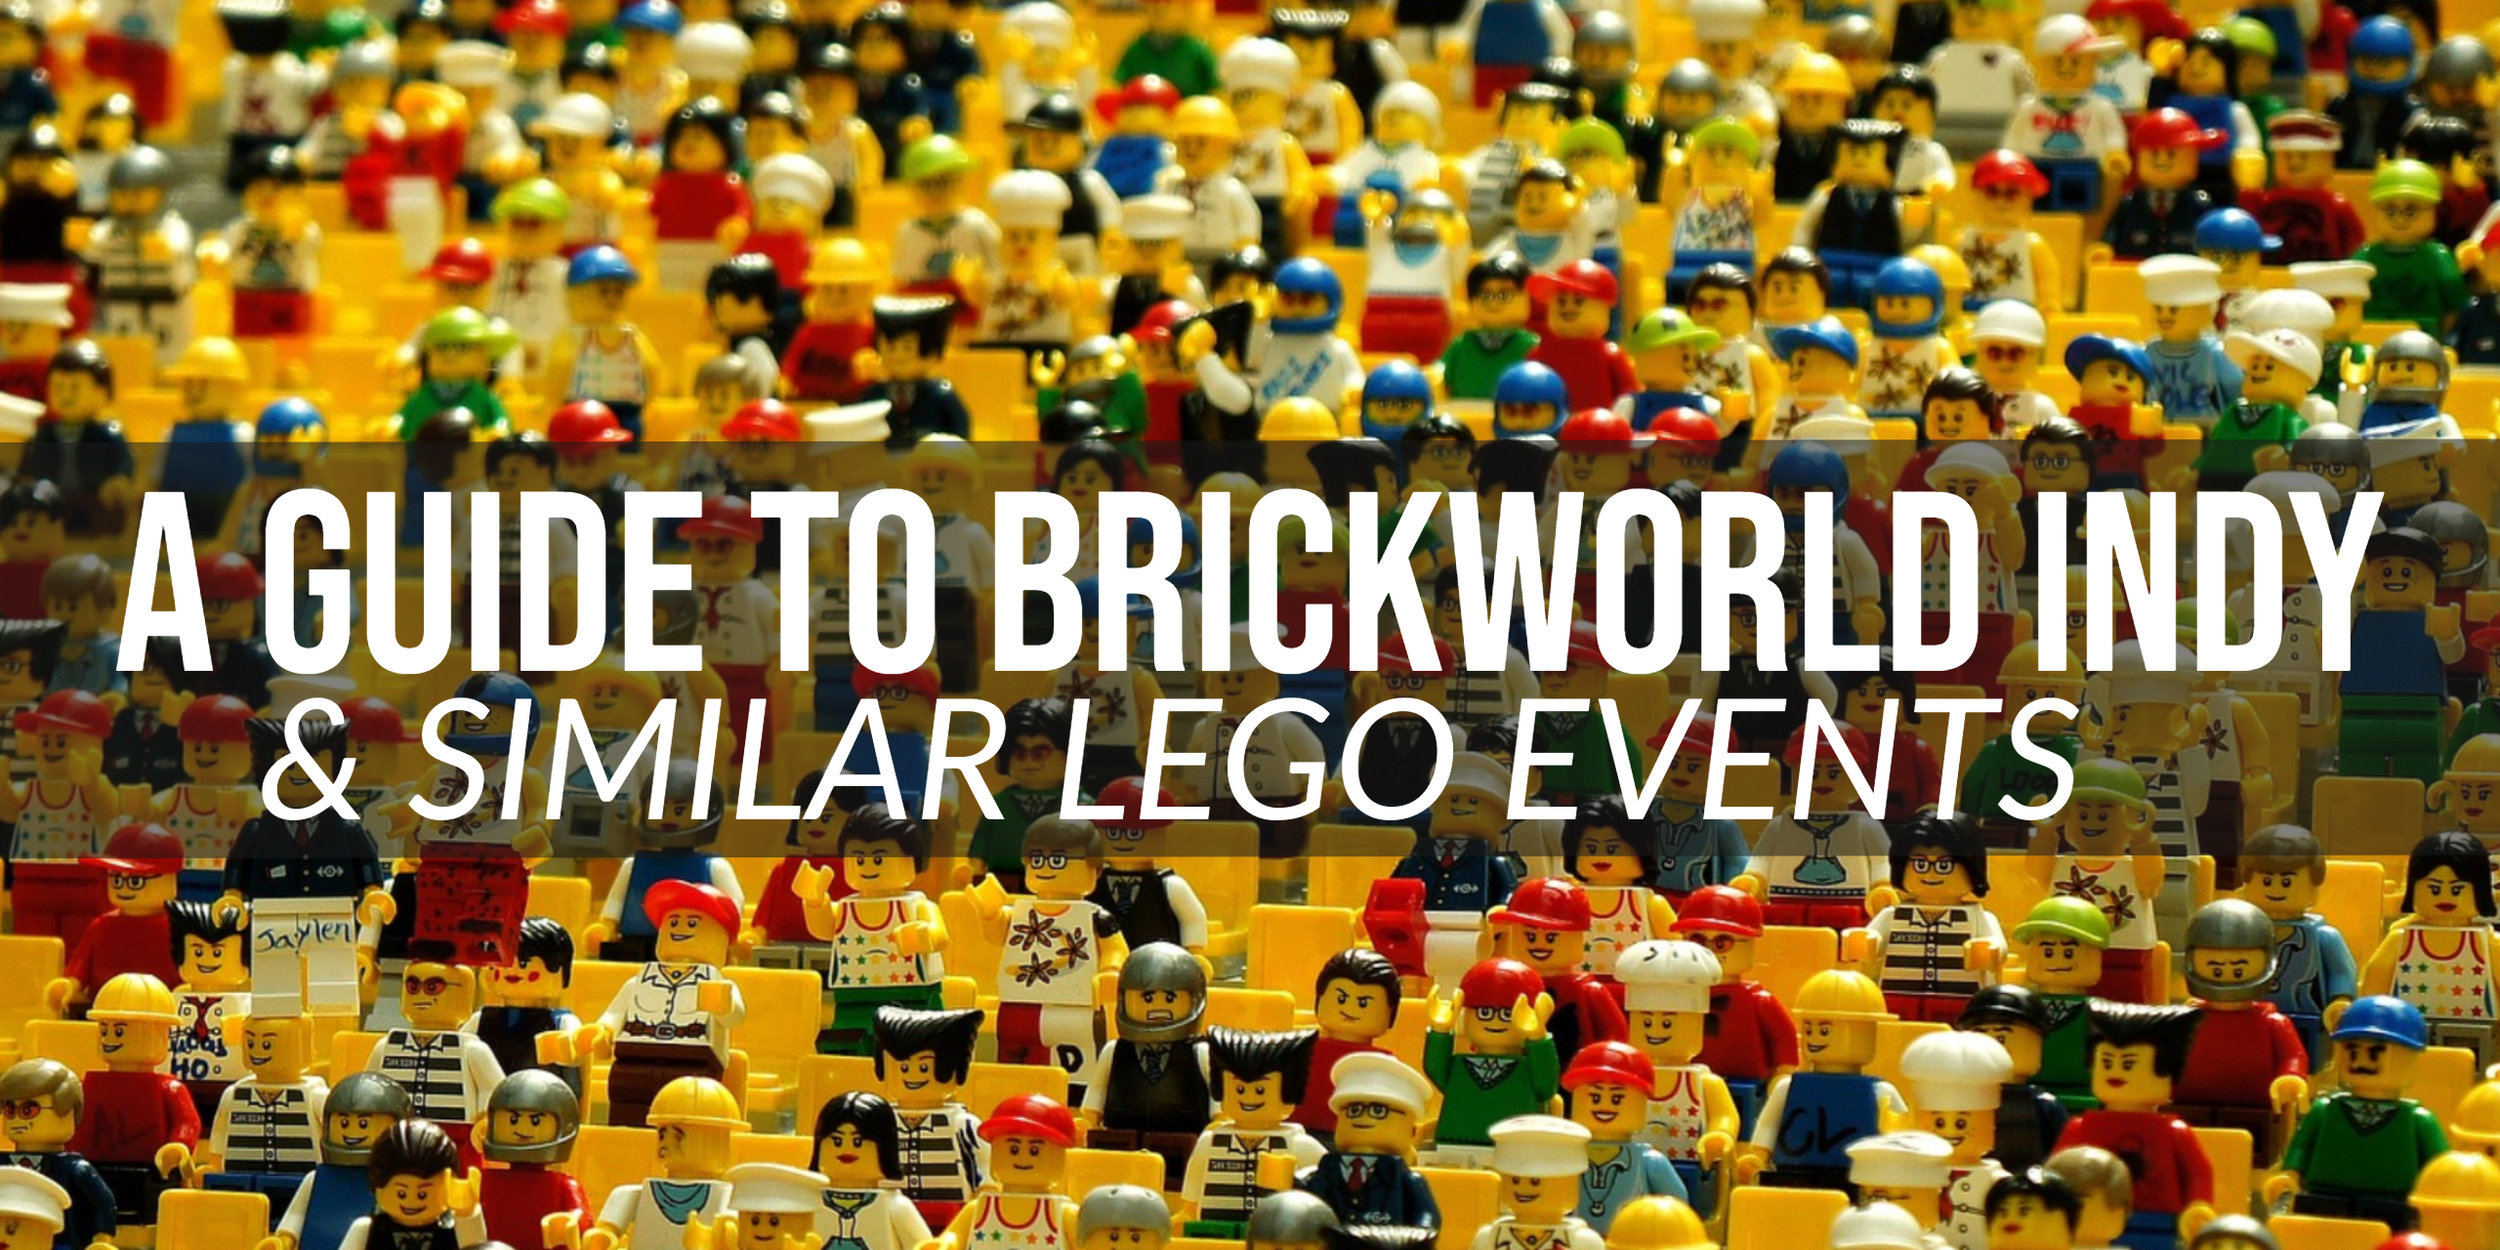 Lego Brick World Main Post.jpg